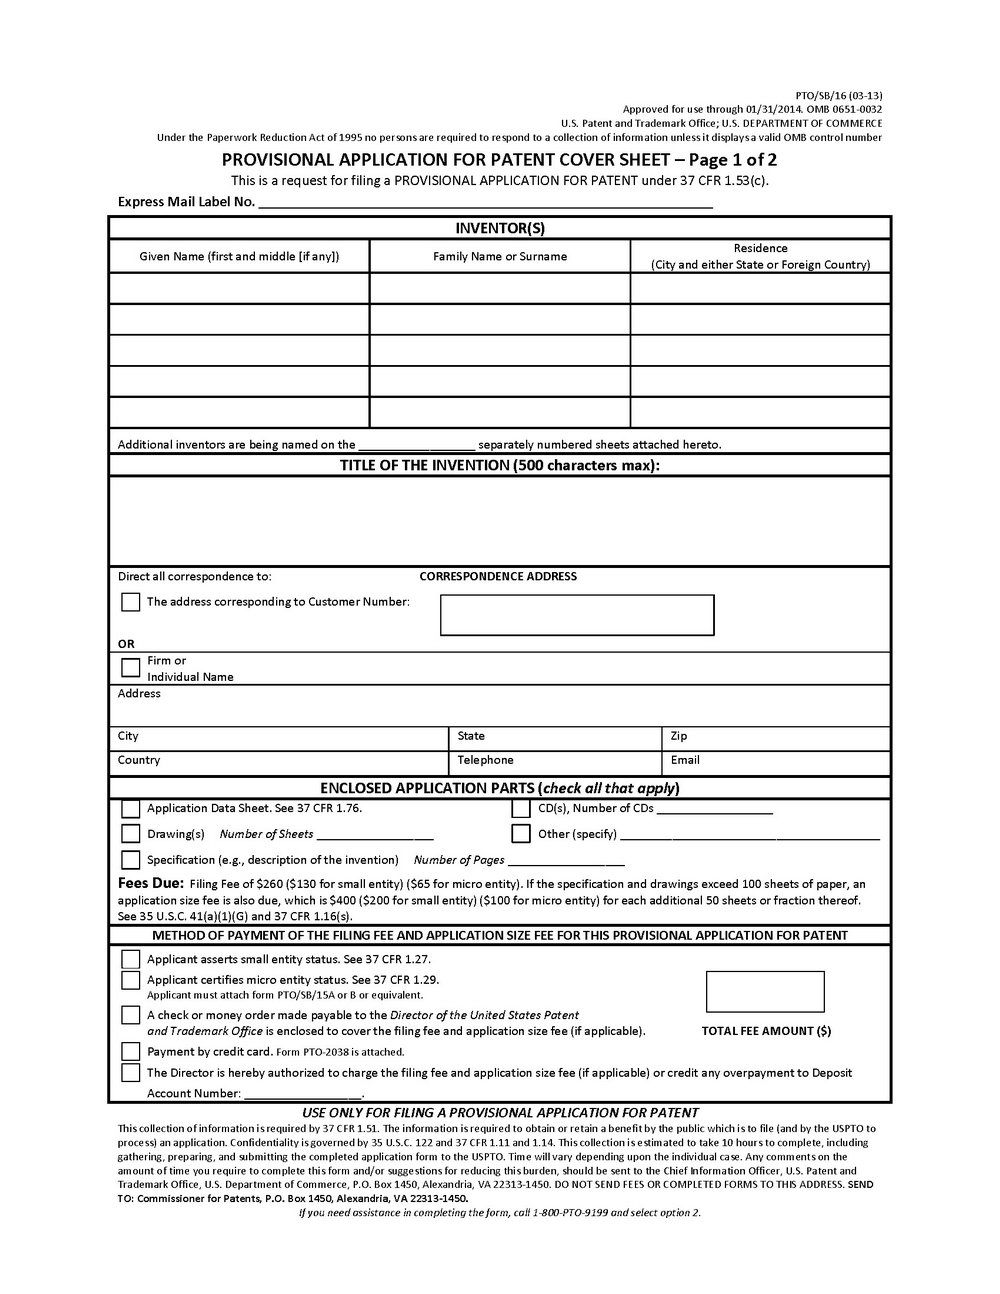 Provisional Patent Application Form